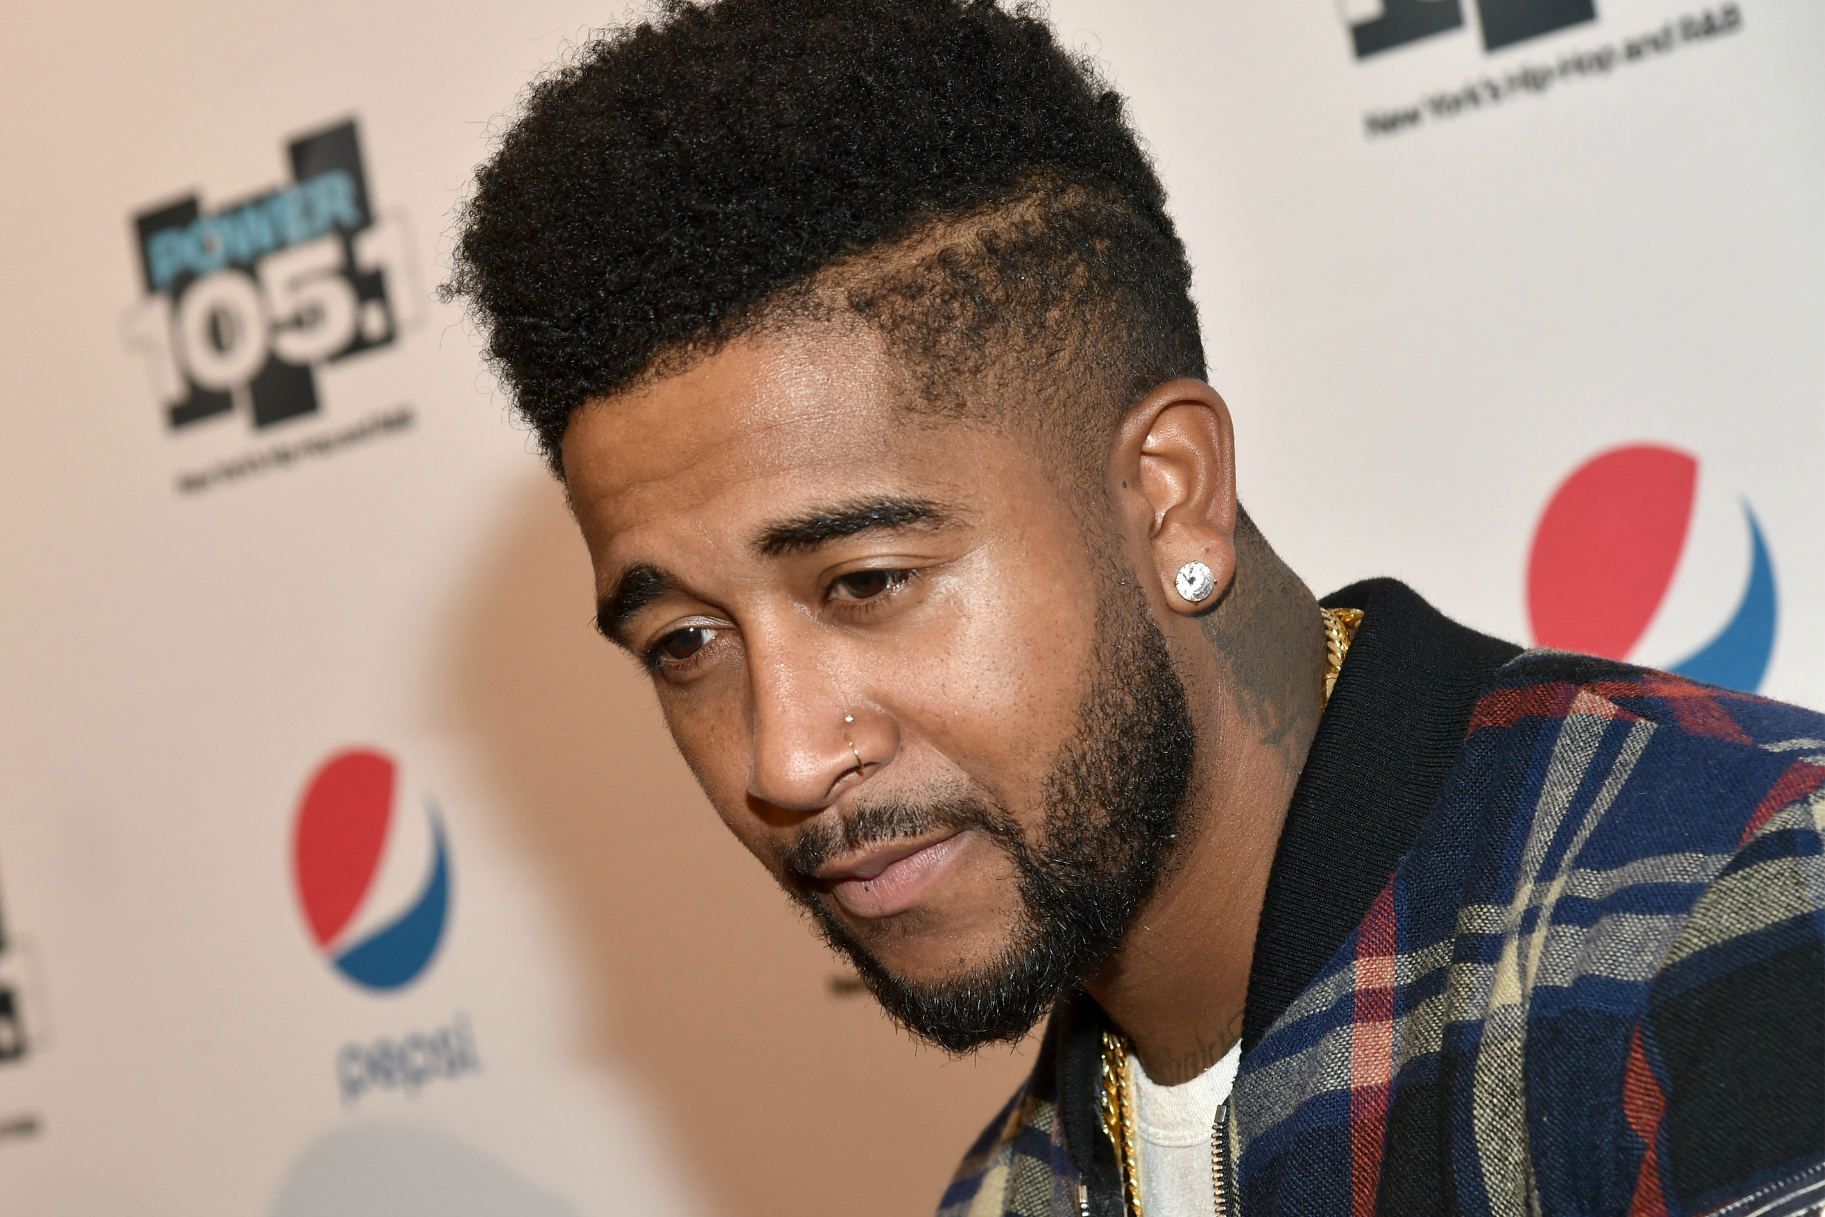 Omarion Just Went On A Crazy Twitter Rant About The ...